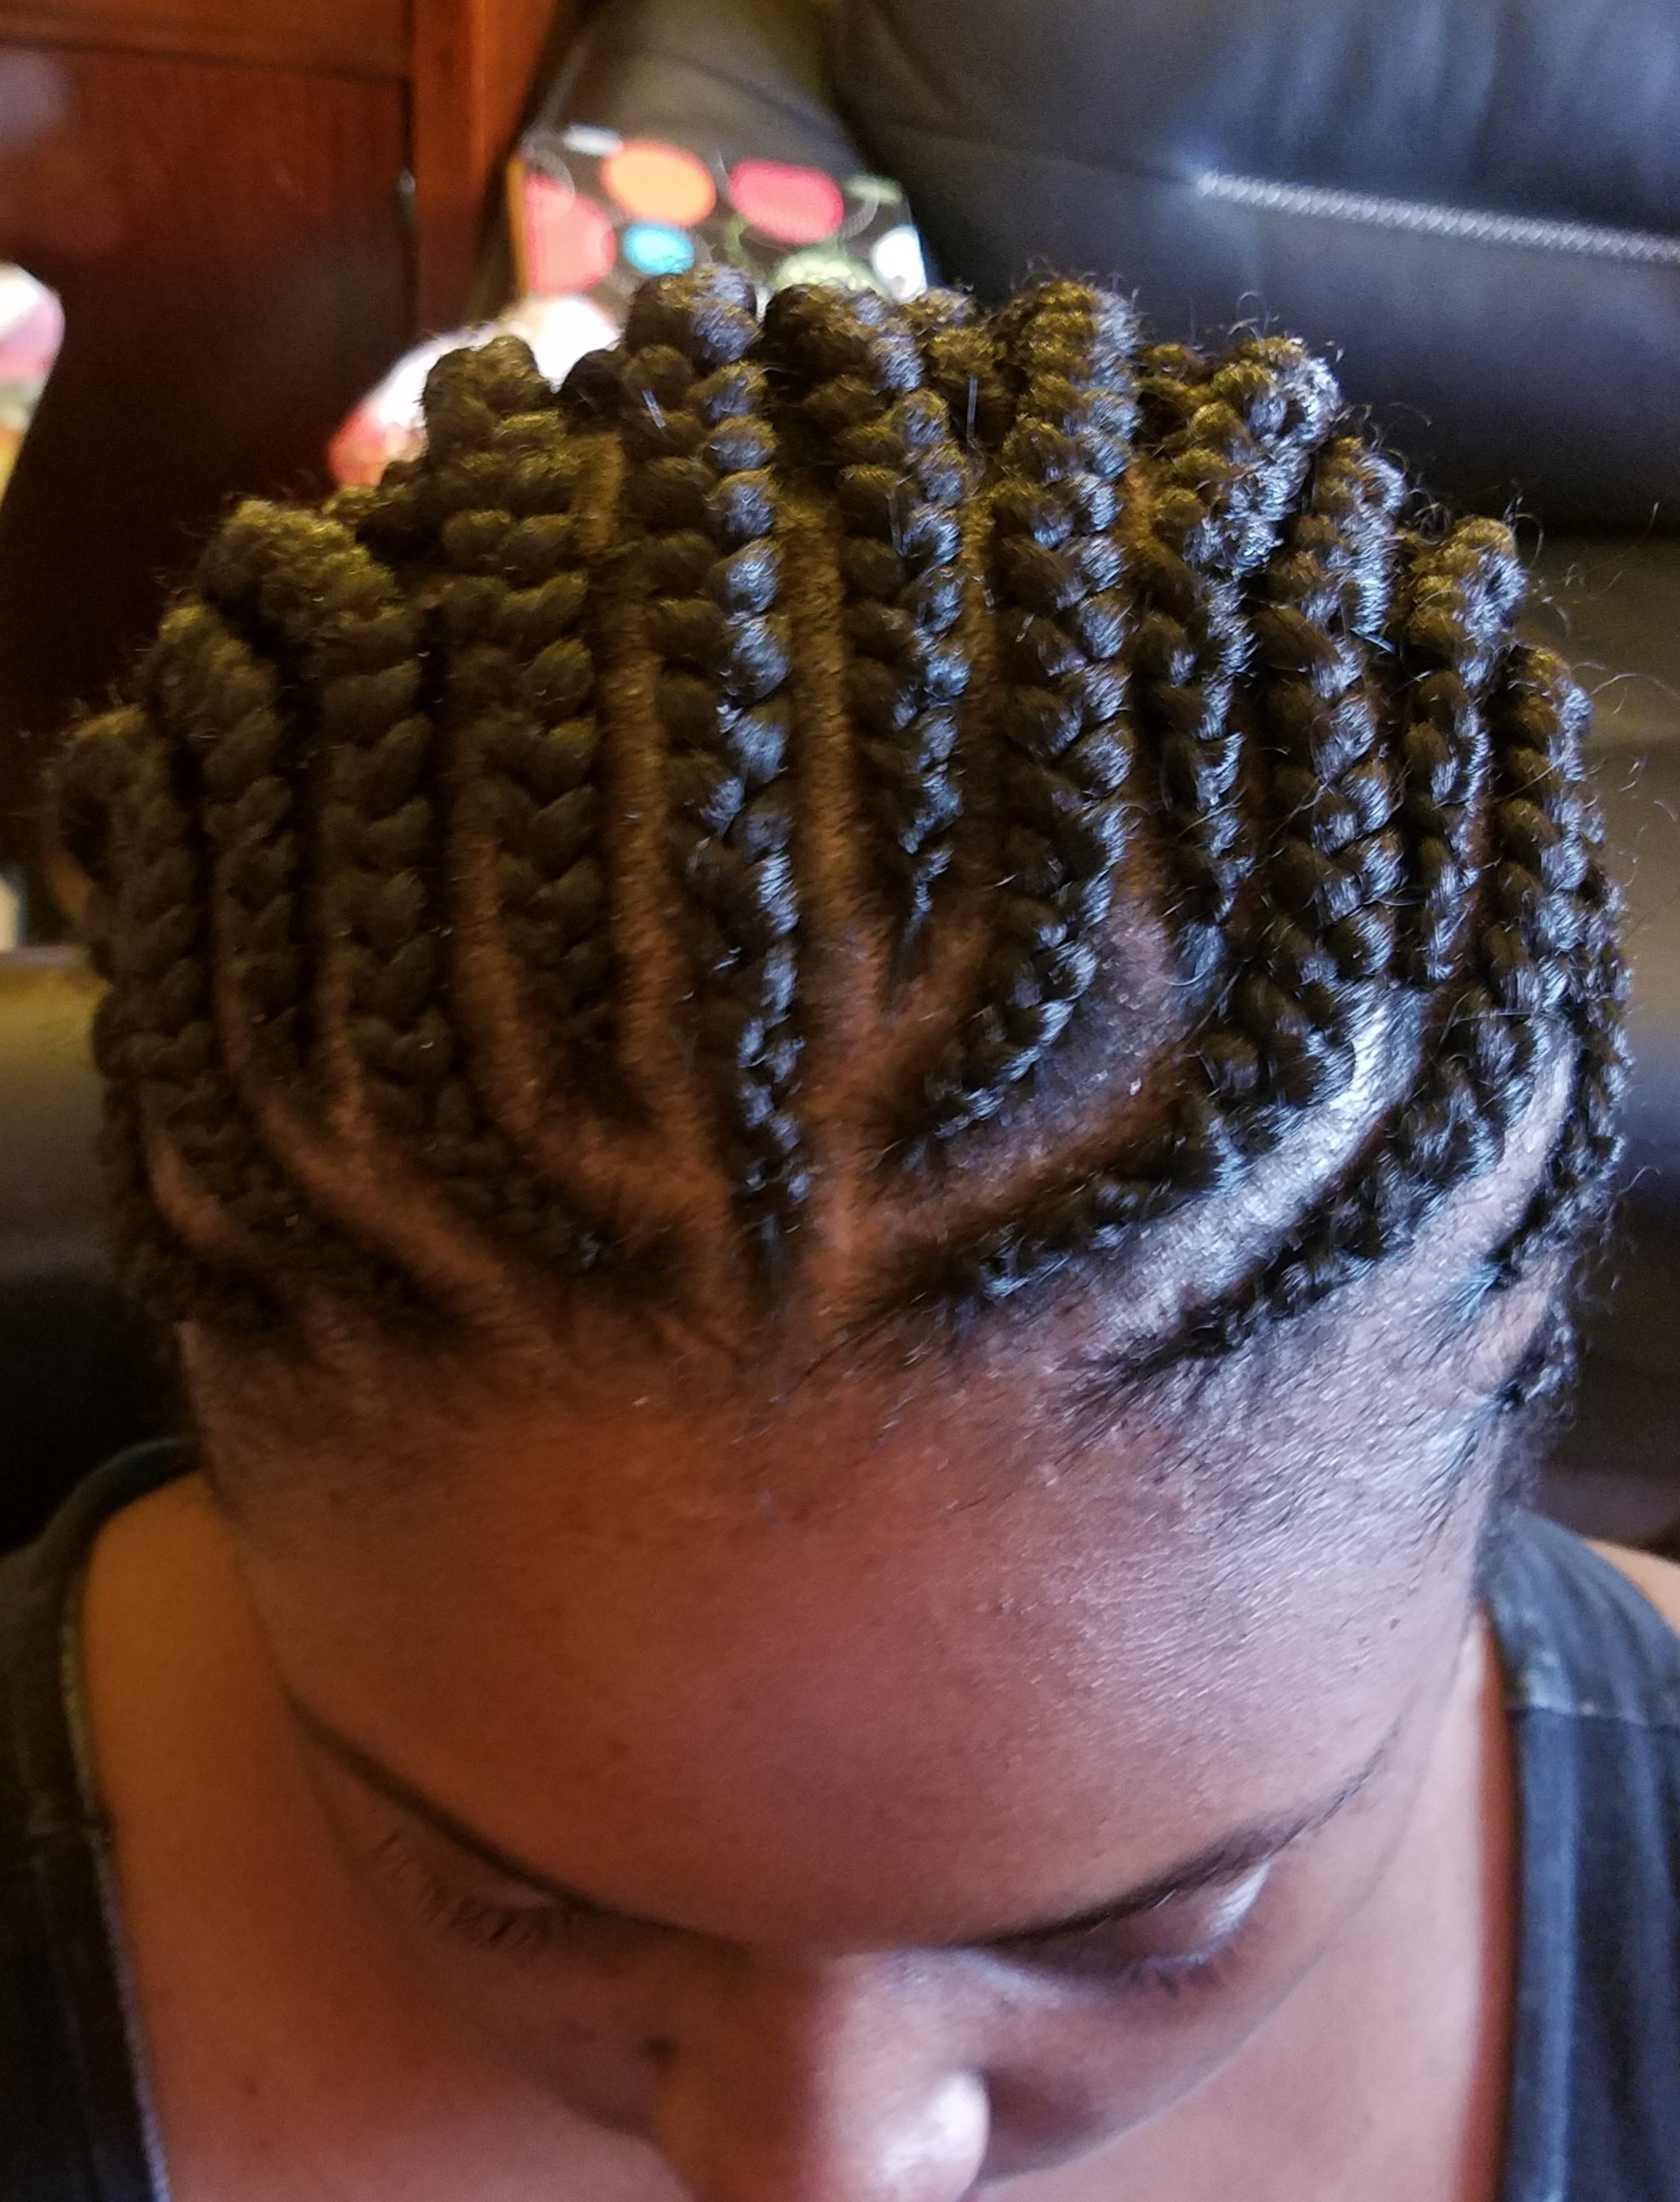 salon de coiffure afro tresse tresses box braids crochet braids vanilles tissages paris 75 77 78 91 92 93 94 95 PNKCELCR